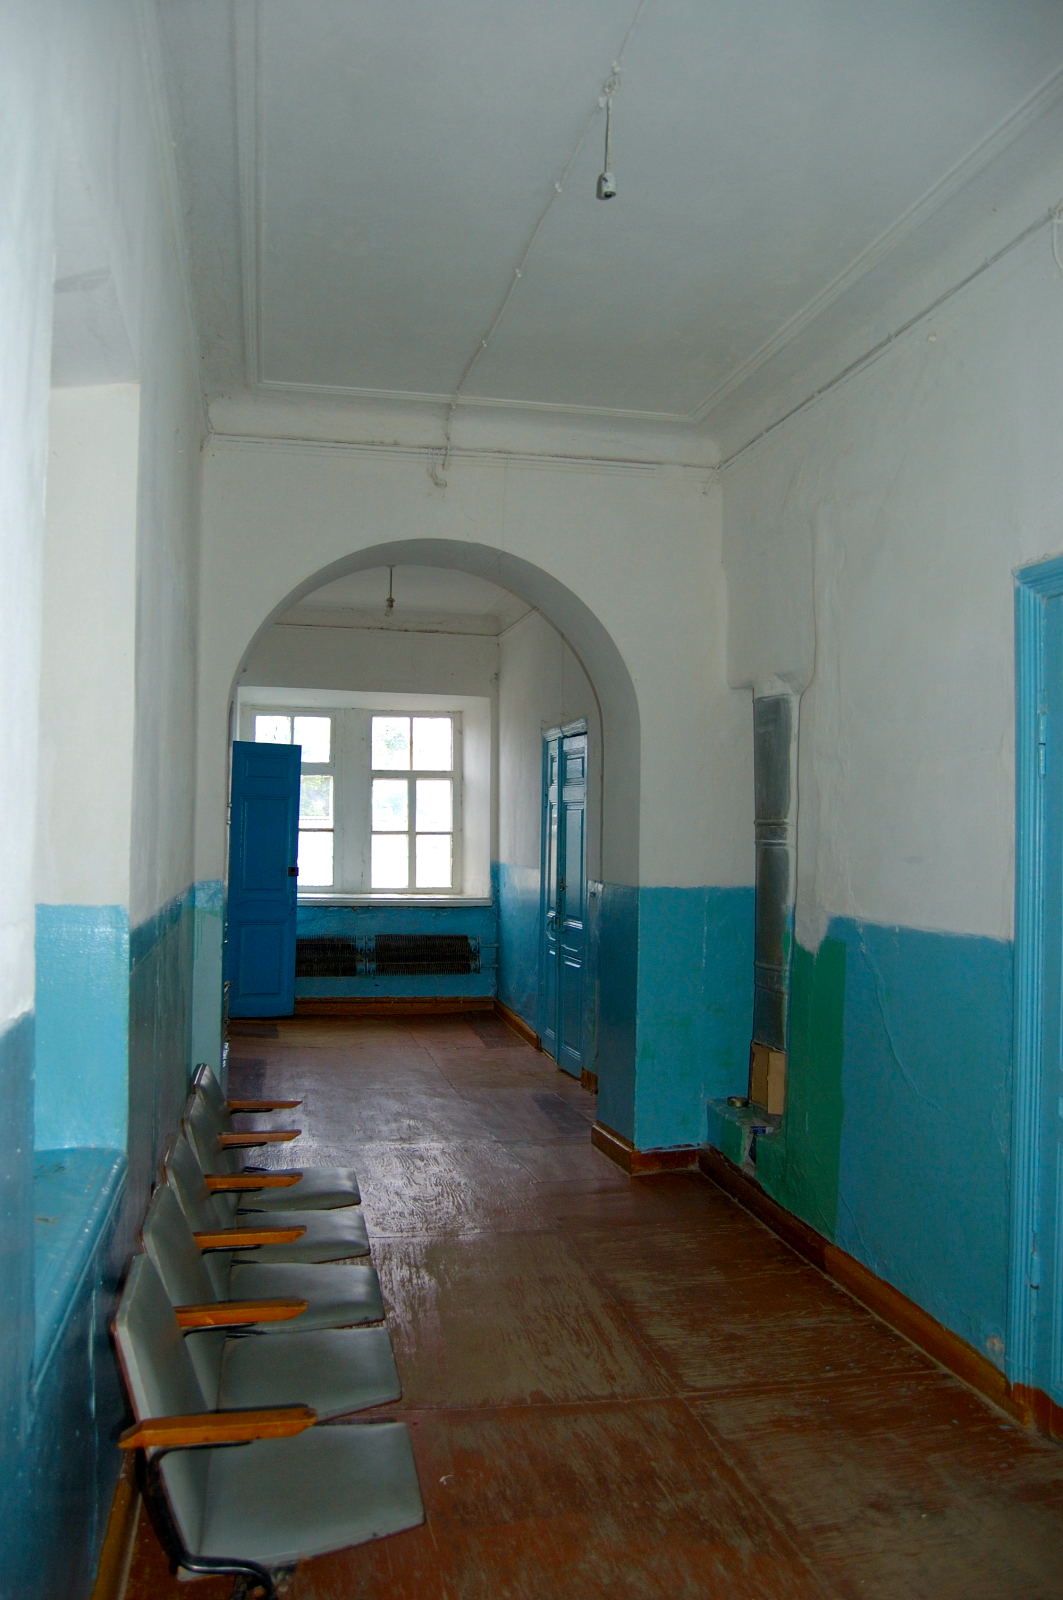 Interior of the Grimm Central School. Courtesy of Steve Schreiber (2006).